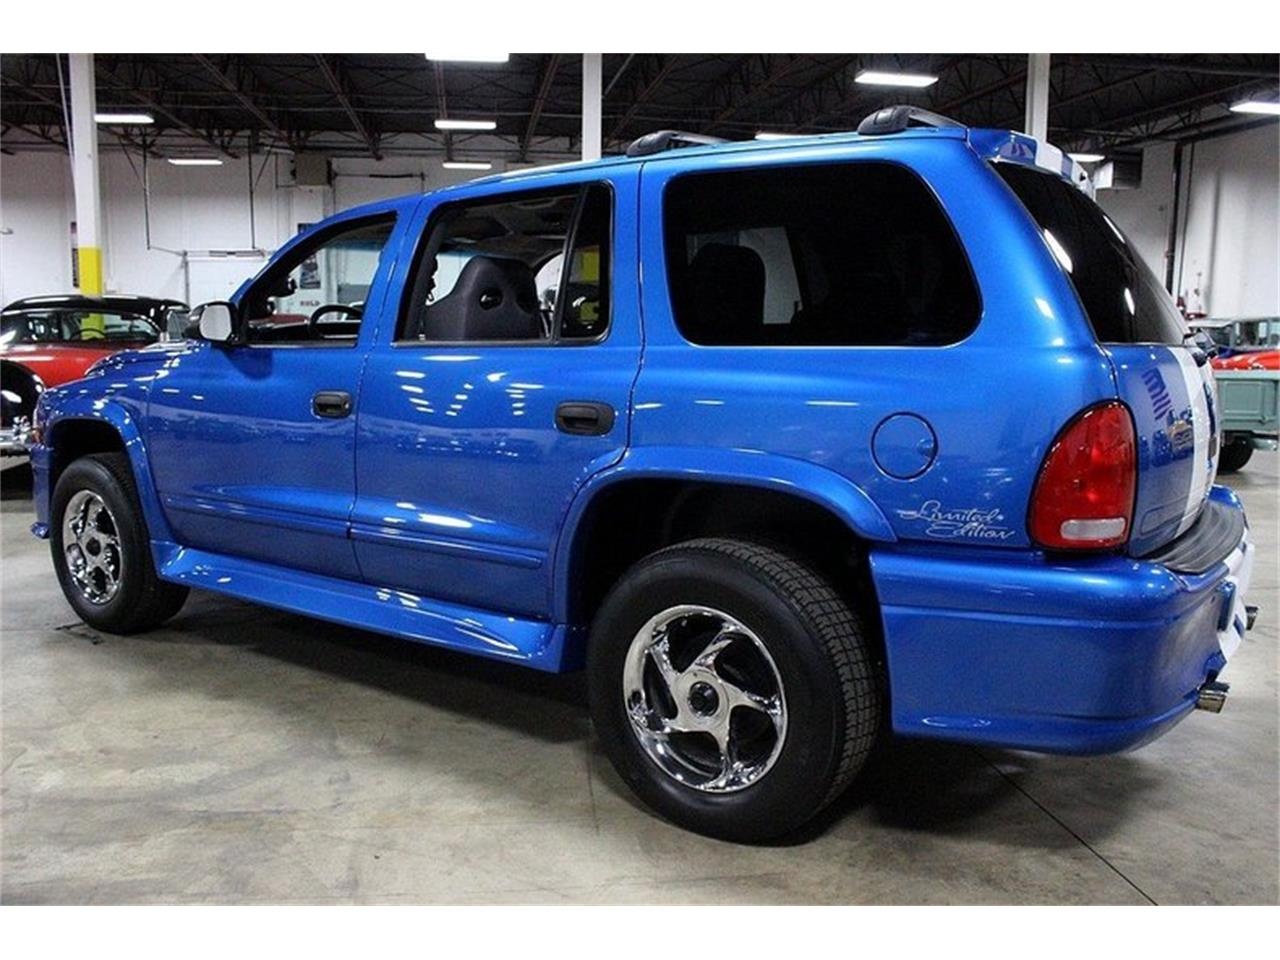 Large Picture of '99 Dodge Durango Shelby SP-360 Offered by GR Auto Gallery - MB1Y